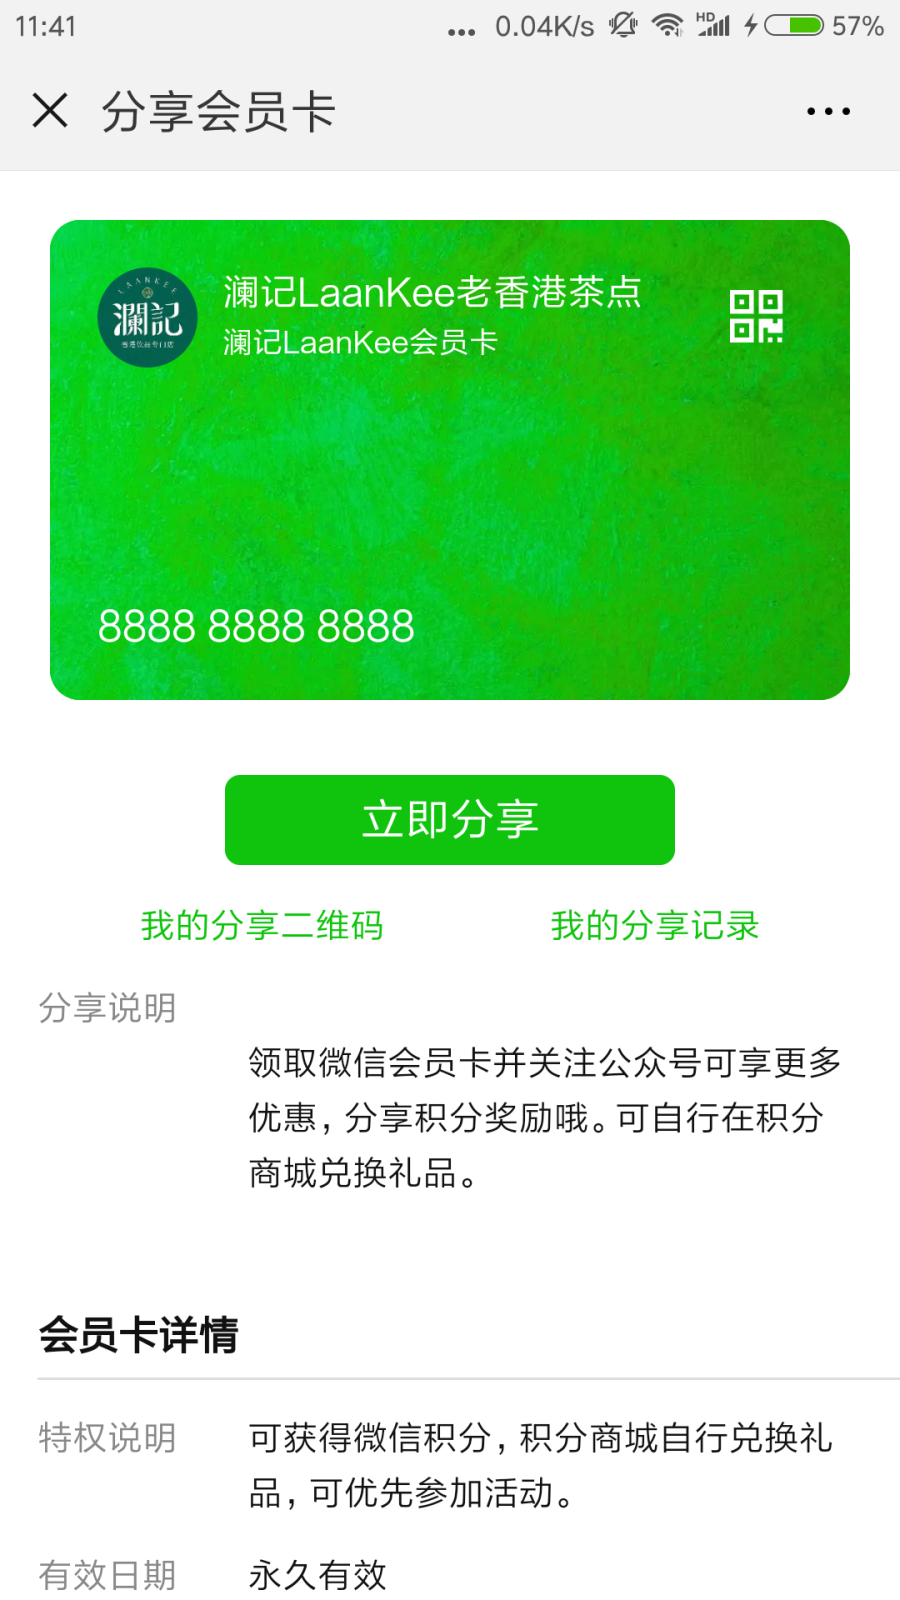 Screenshot_2018-08-27-11-41-39-888_com.tencent.mm.png